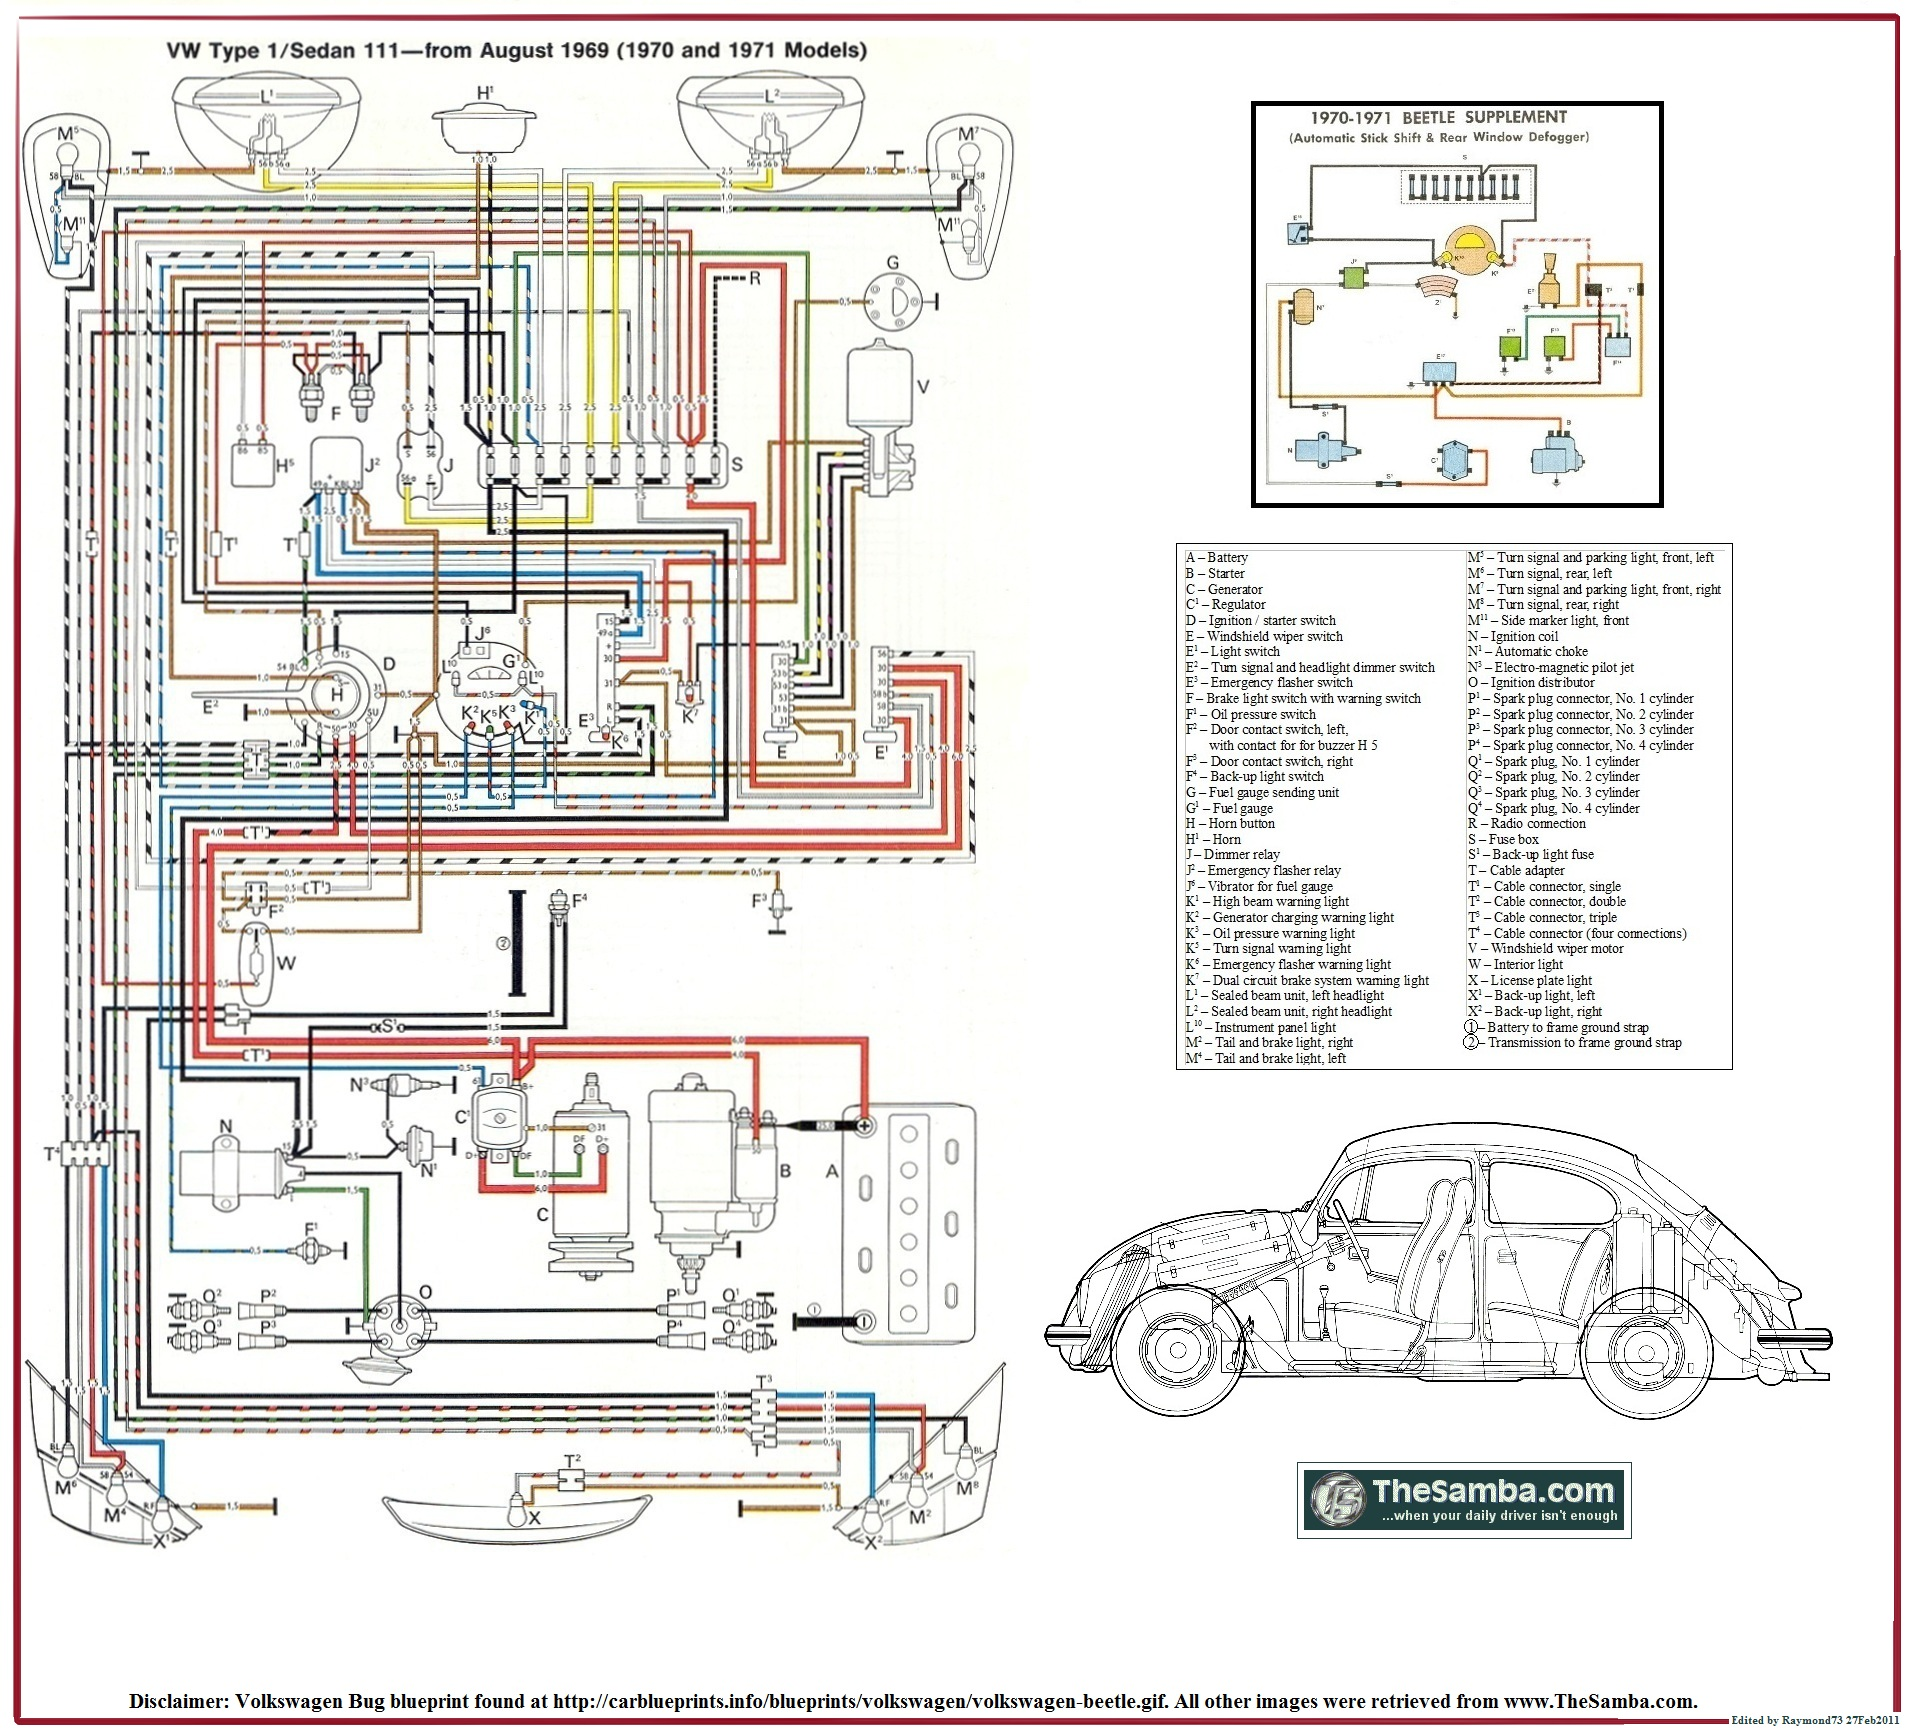 1970_VW_Type_1_Poster vw type 1 wiring diagram 1961 vw type 1 wiring diagram \u2022 wiring volkswagen wiring diagrams at readyjetset.co